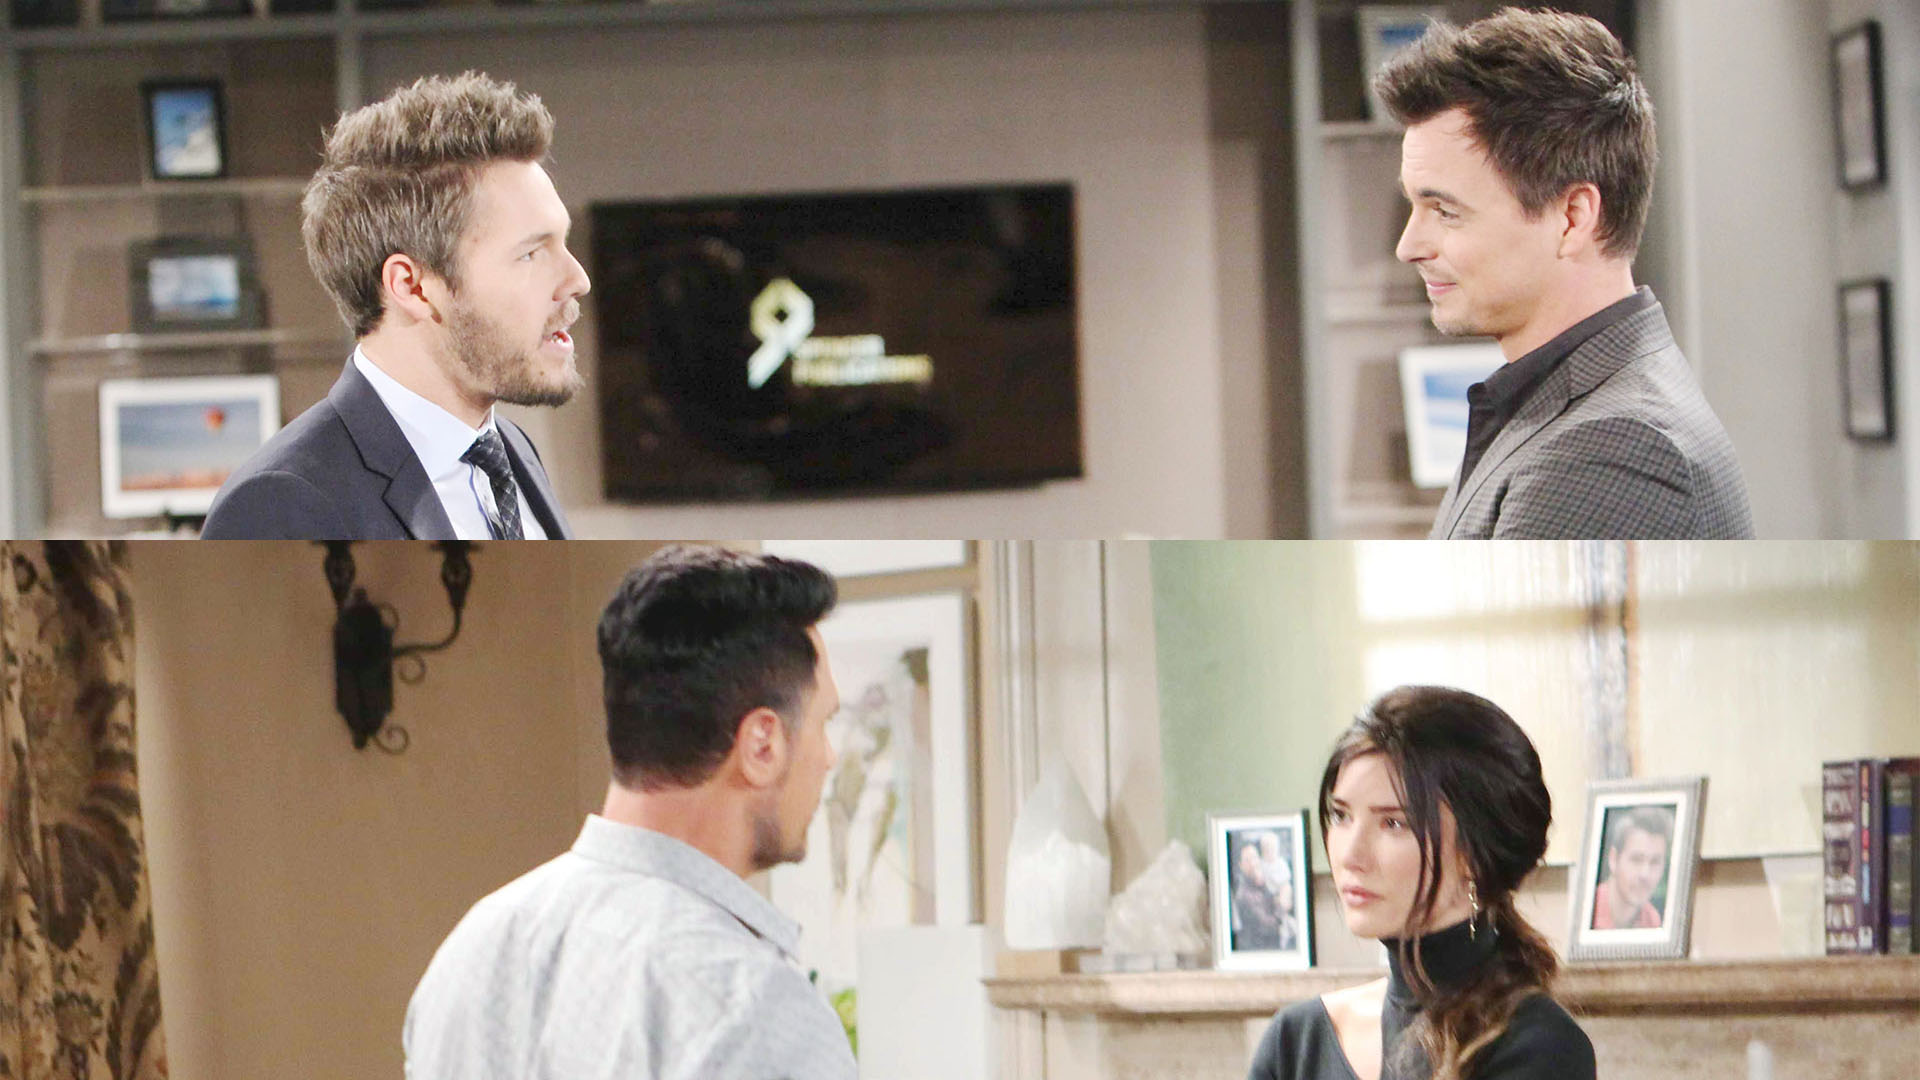 Liam shares his happy news with Wyatt, while Steffy shares her not-so-happy news with Bill.